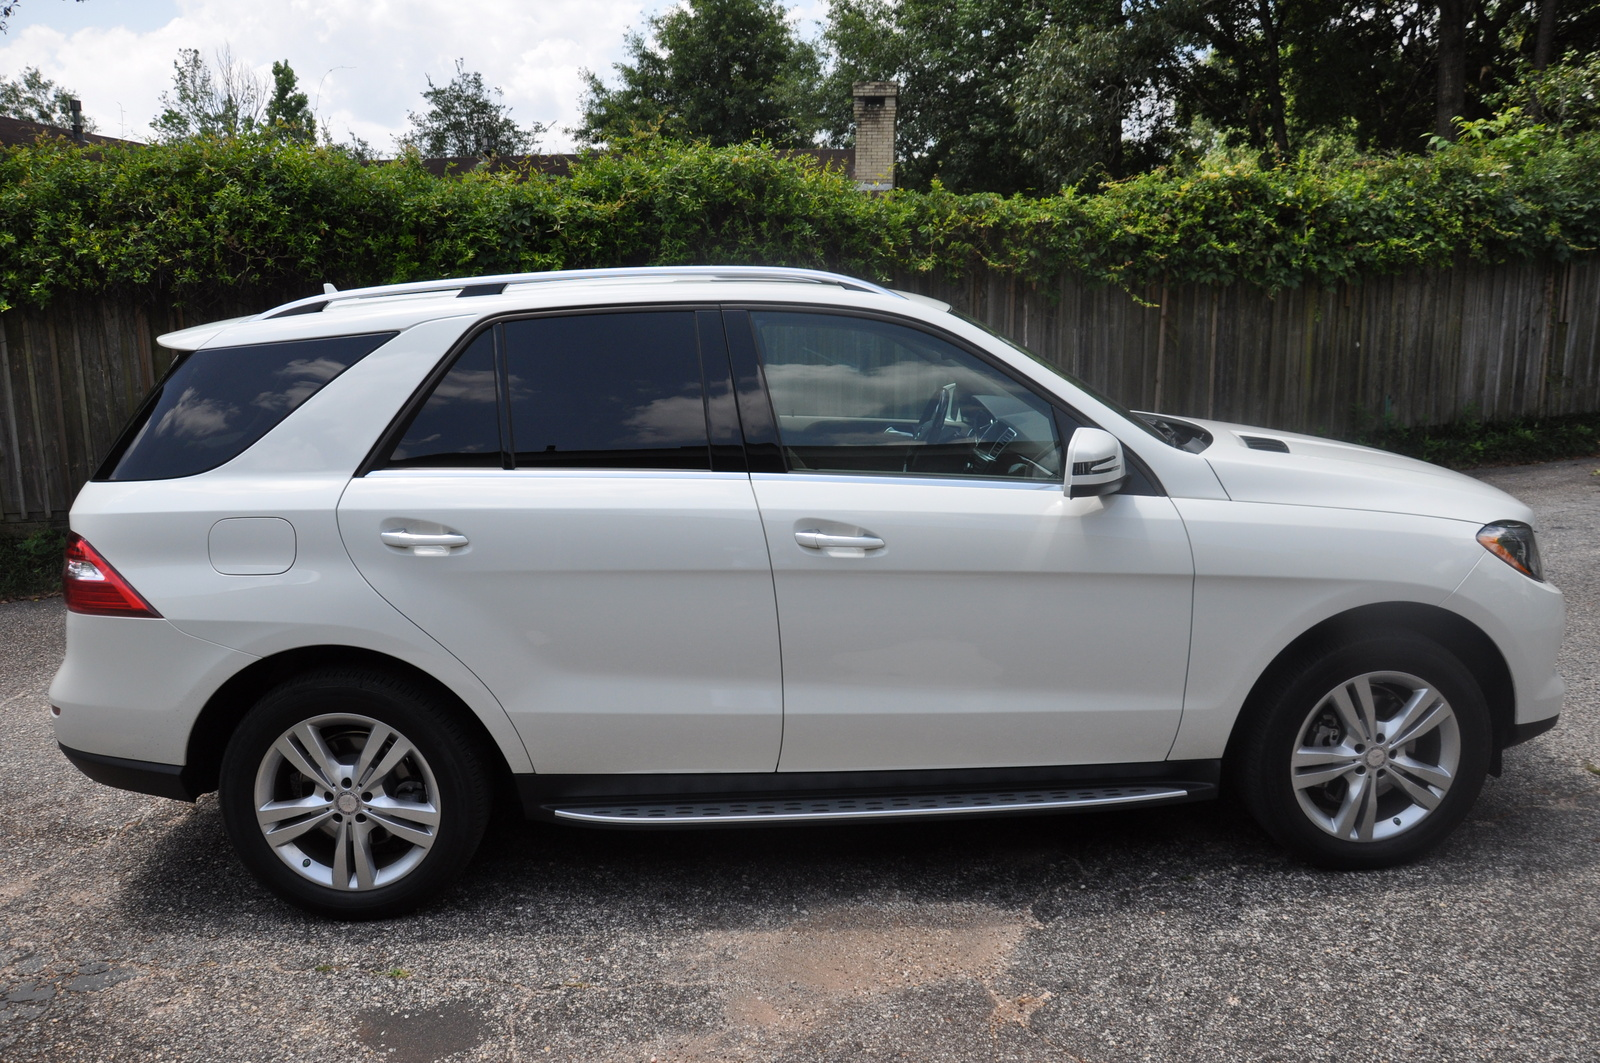 2013 mercedes benz ml350 bluetec specs for 2013 mercedes benz ml 350